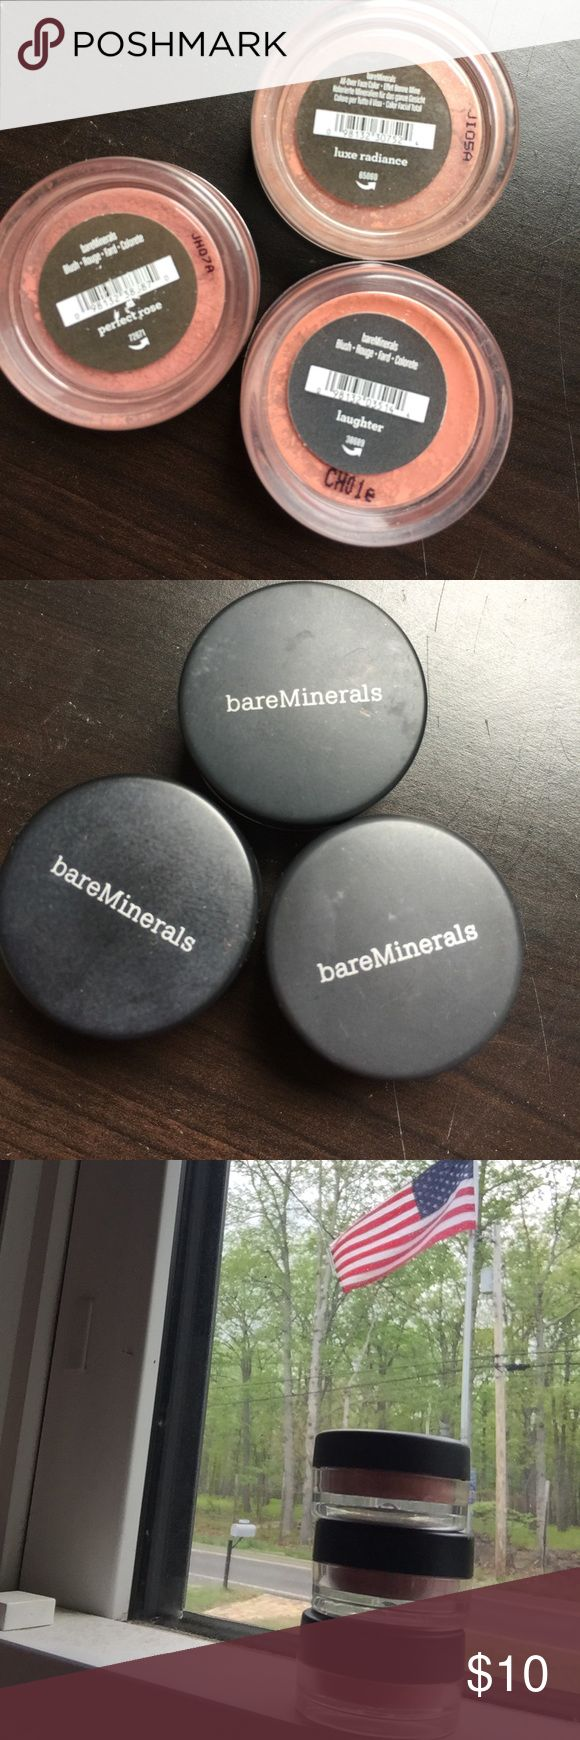 "Bare Minerals~ 2 blushes & lux radiance 4 face Bare Minerals, set of 3 pigments. Blush in ""laughter"" & ""perfect rose"". Luxe Radiance all over face color. These have been opened, a tiny bit has been taken out (I was a make up artist for years so these are sanitized). All 3 are basically new. For questions please comment. These are the little jars. bareMinerals Makeup Blush"